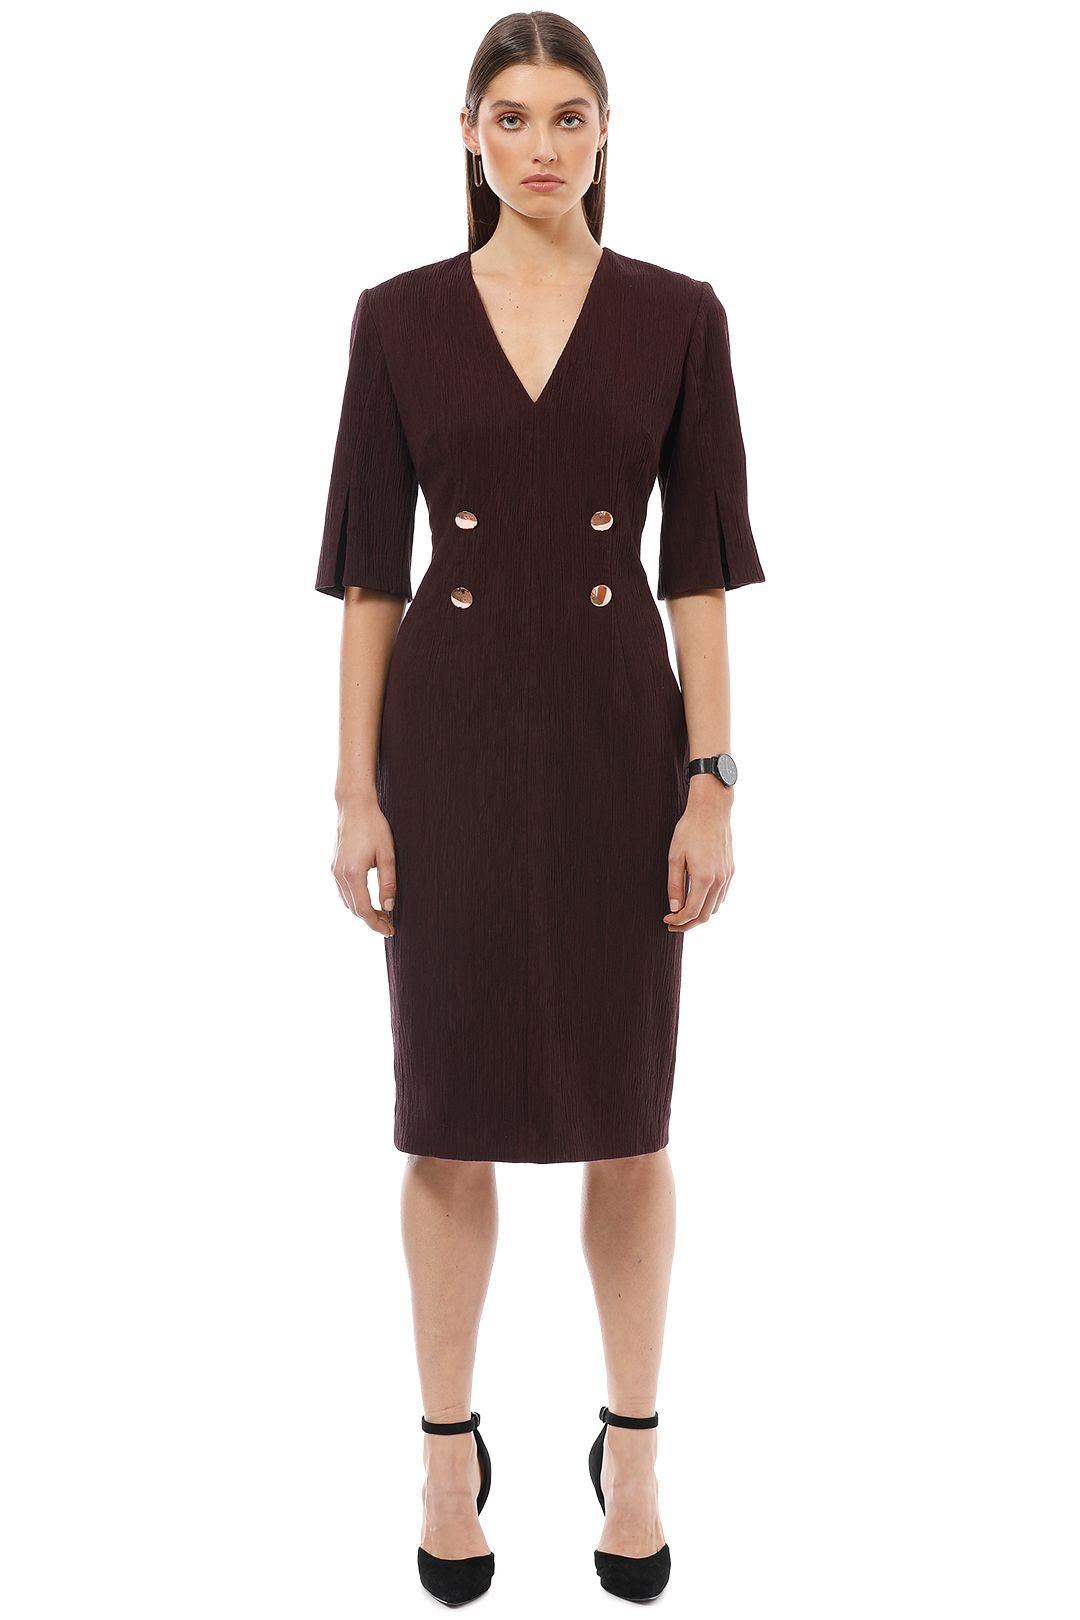 Ginger and Smart - Moduate Dress with Sleeve - Burgundy - Front